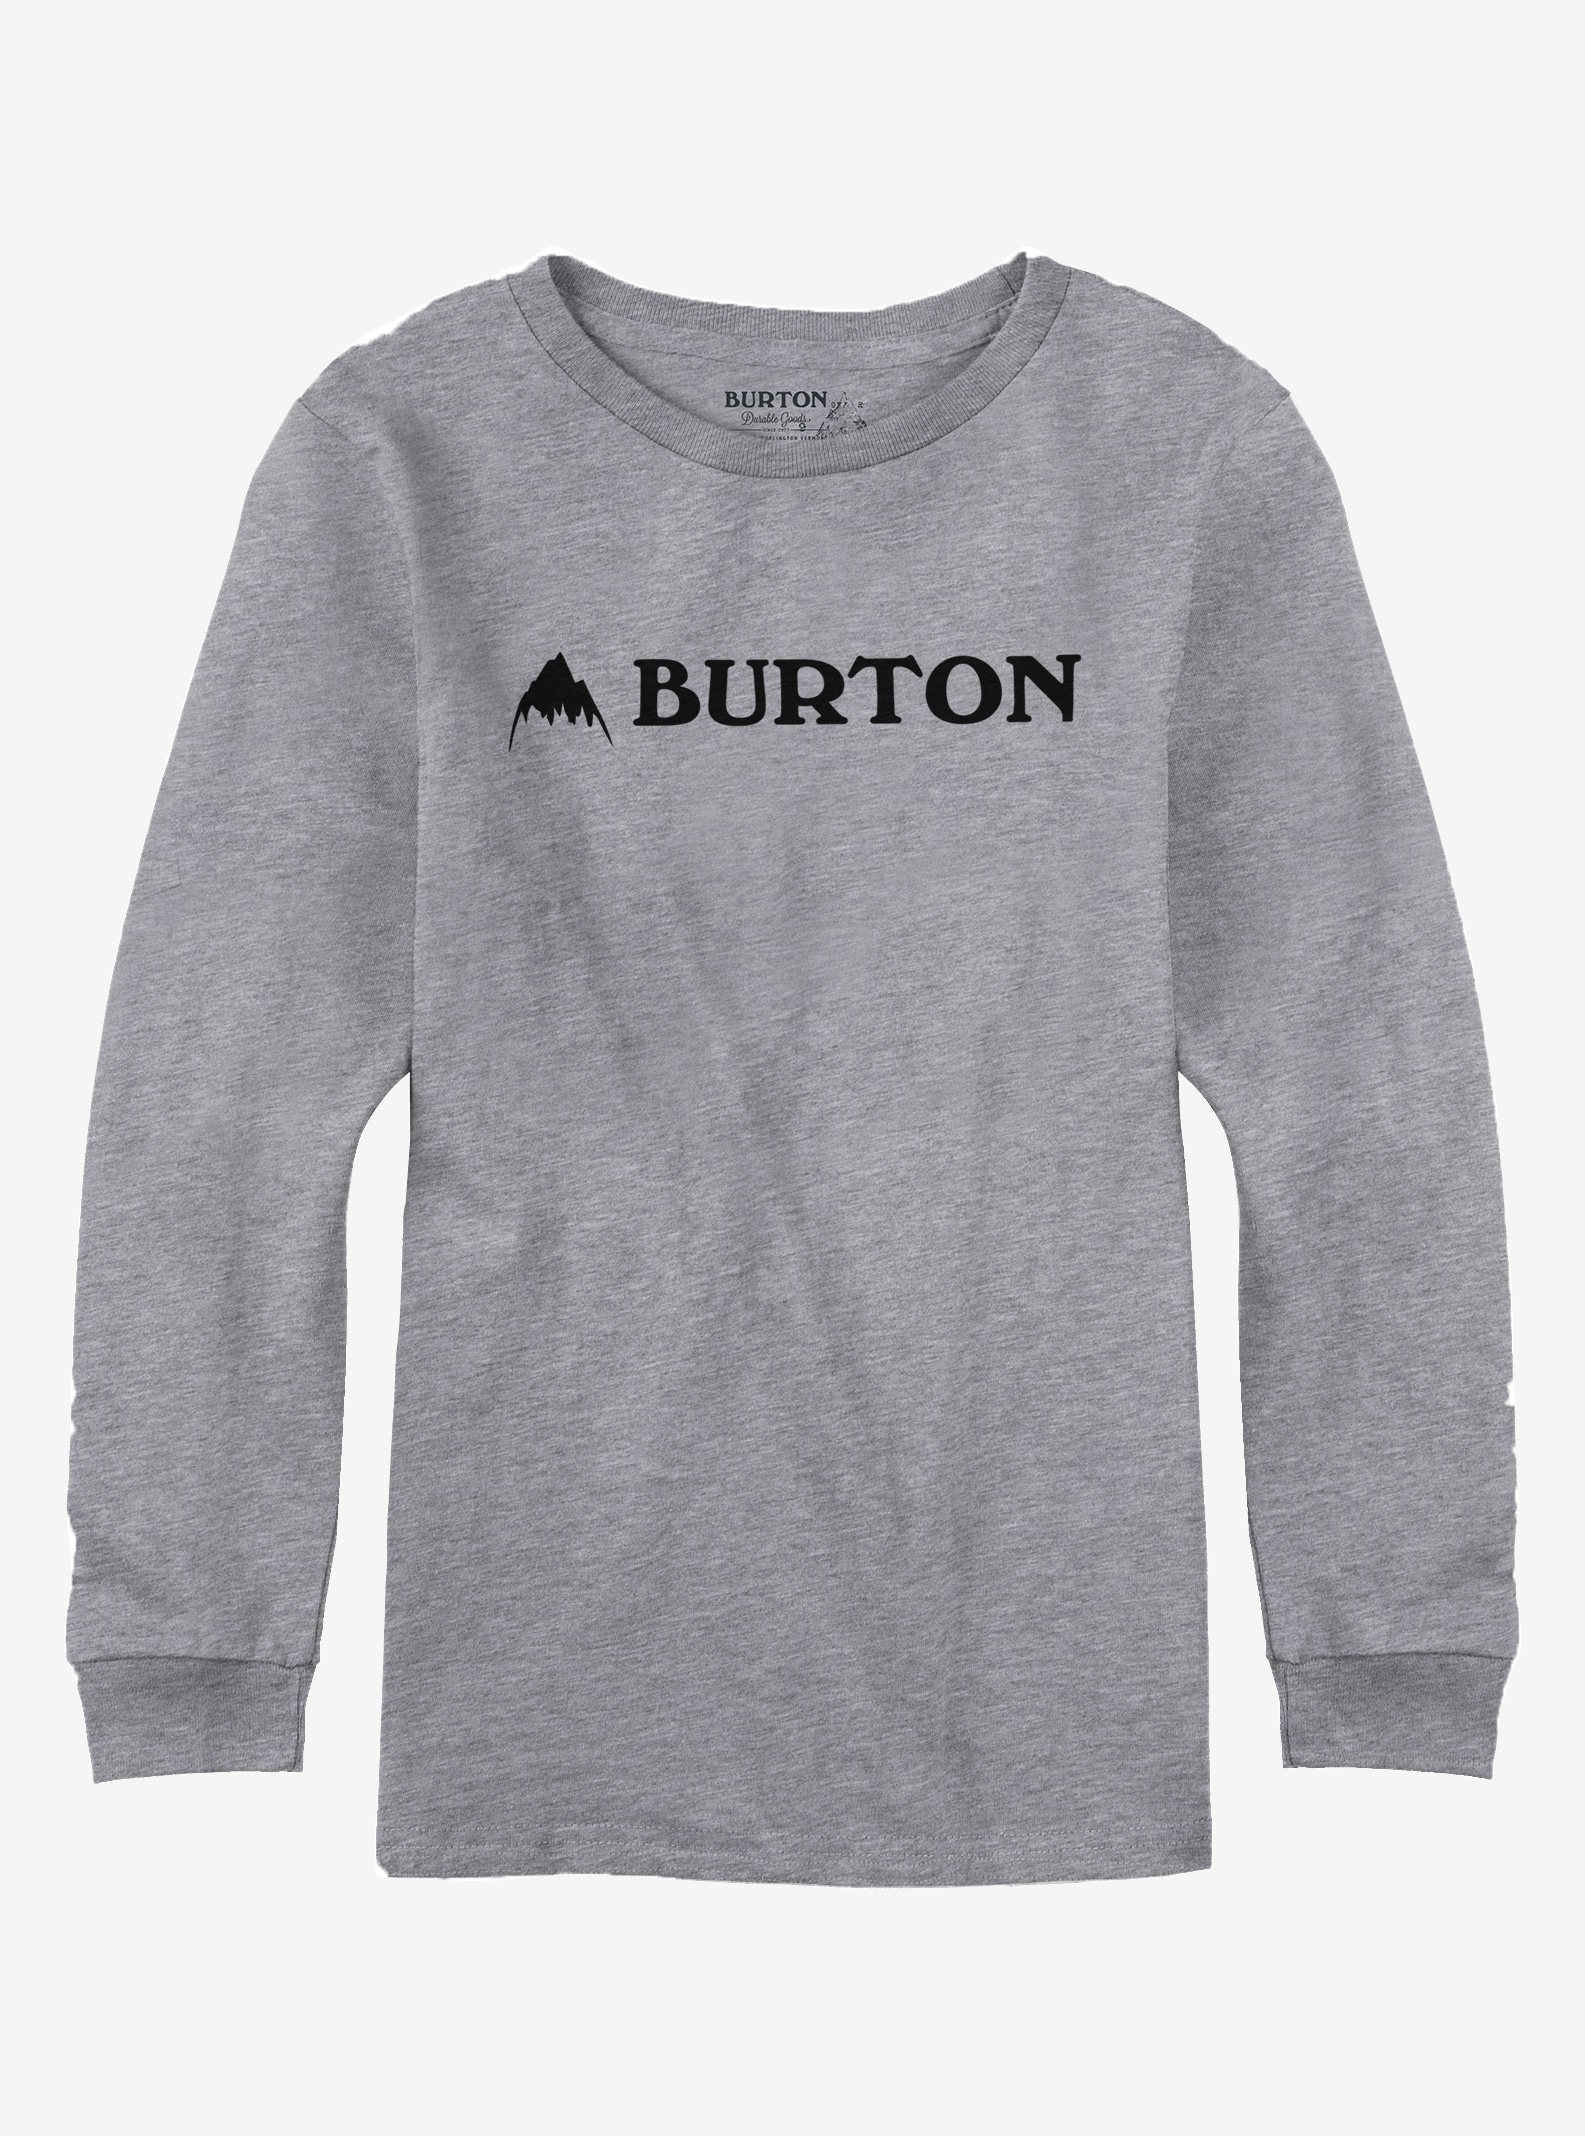 Boys' Burton Mountain Horizontal Long Sleeve T Shirt shown in Gray Heather